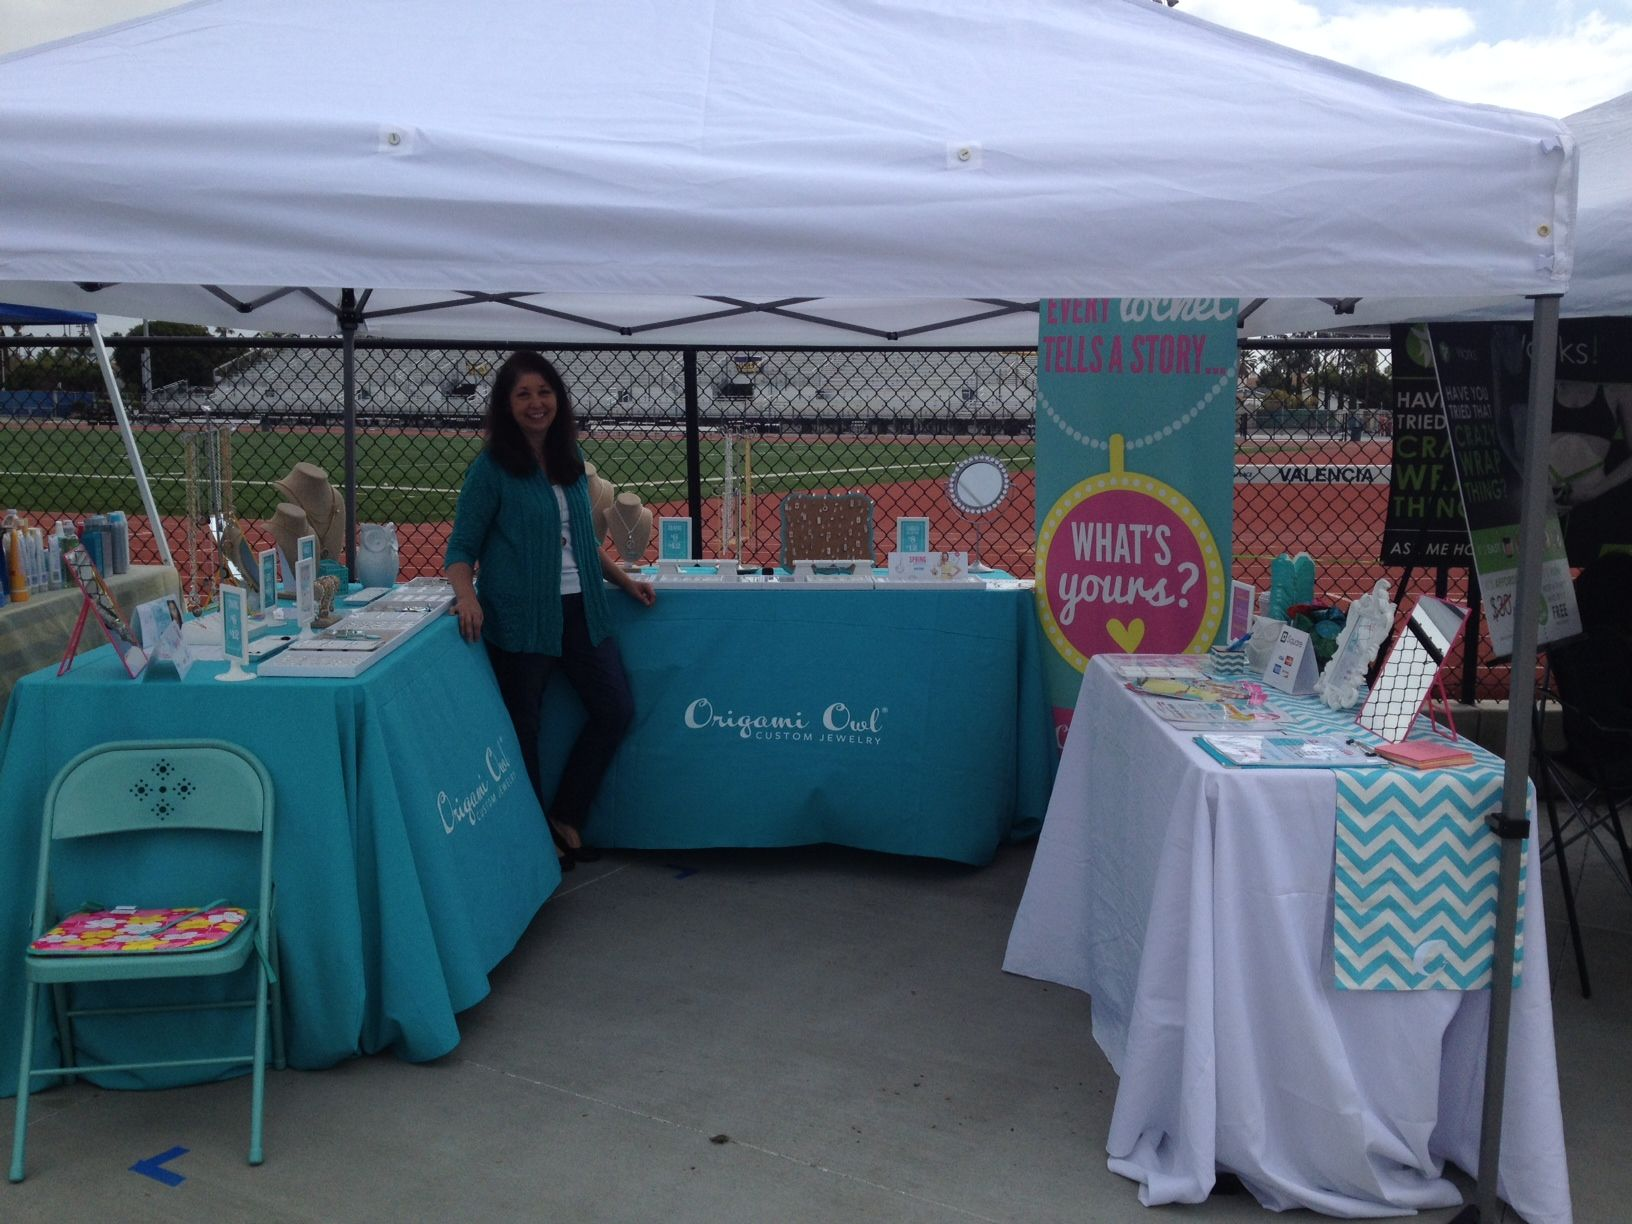 Let's make your next event special!  Whether indoors or out, I will bring a beautiful booth that will let your guests create their lockets and take them home!  ellenrikaorigamiowl@gmail.com ellenrika.origamiowl.com